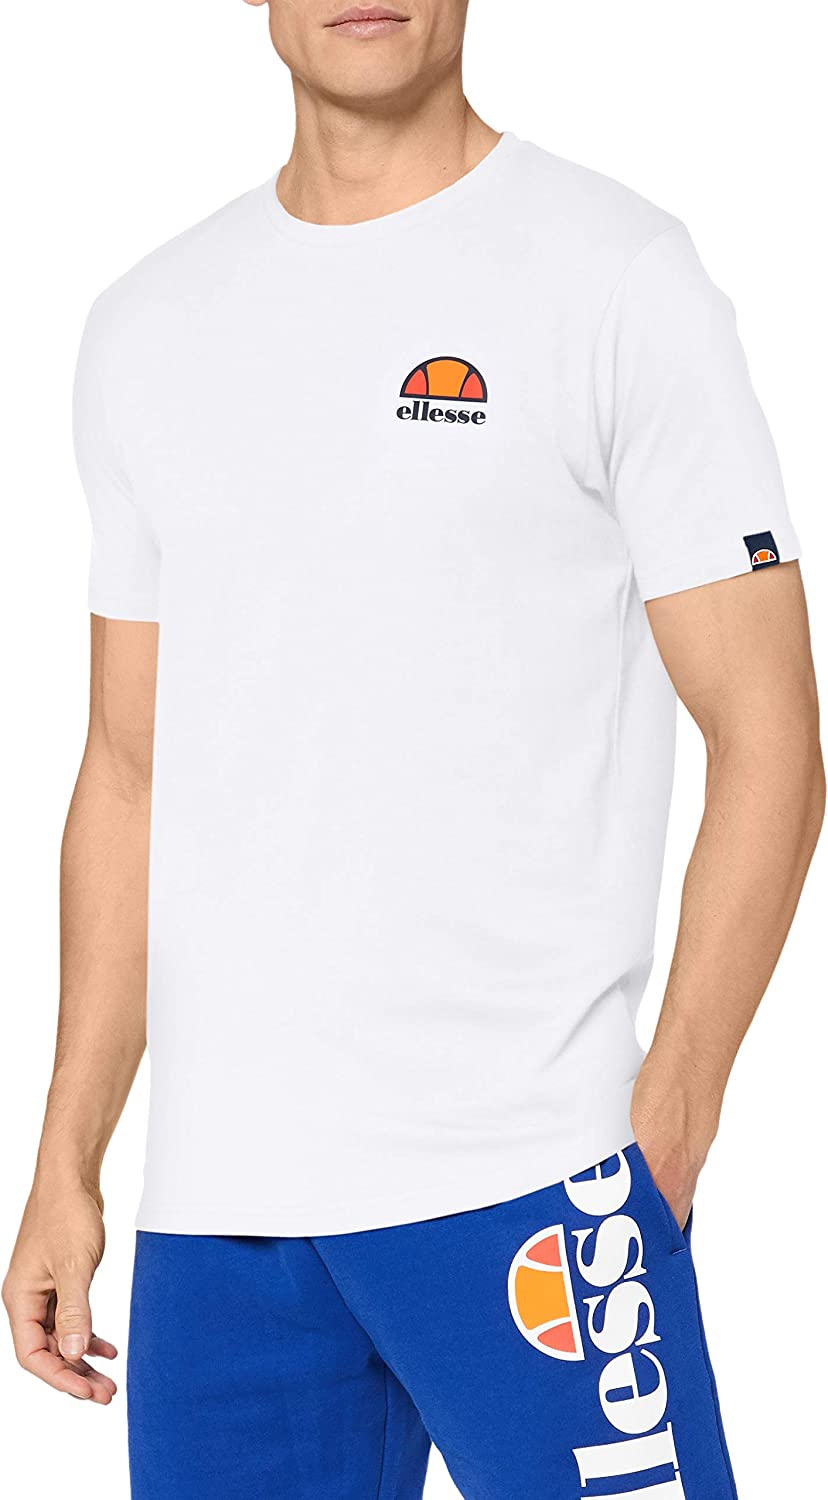 ellesse Canaletto Mens T-Shirt Fresno Mall in Atmosphere Special sale item